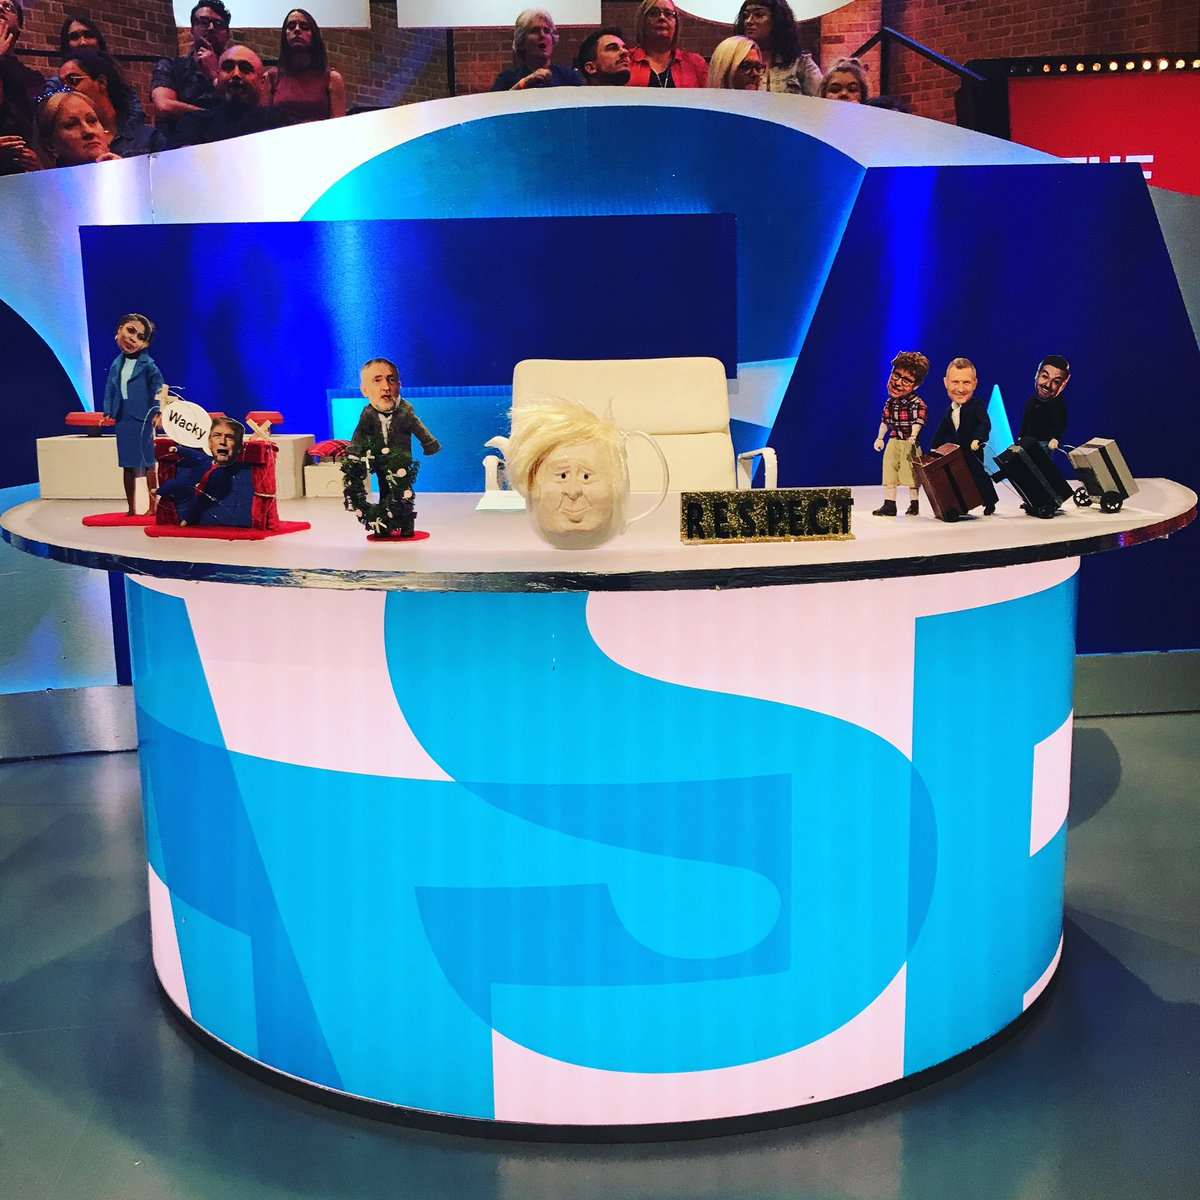 The last leg thelastleg twitter tune in tonight to see how we serve up a refreshing cup of this weeks newspicitterolxnrxfxno ccuart Choice Image